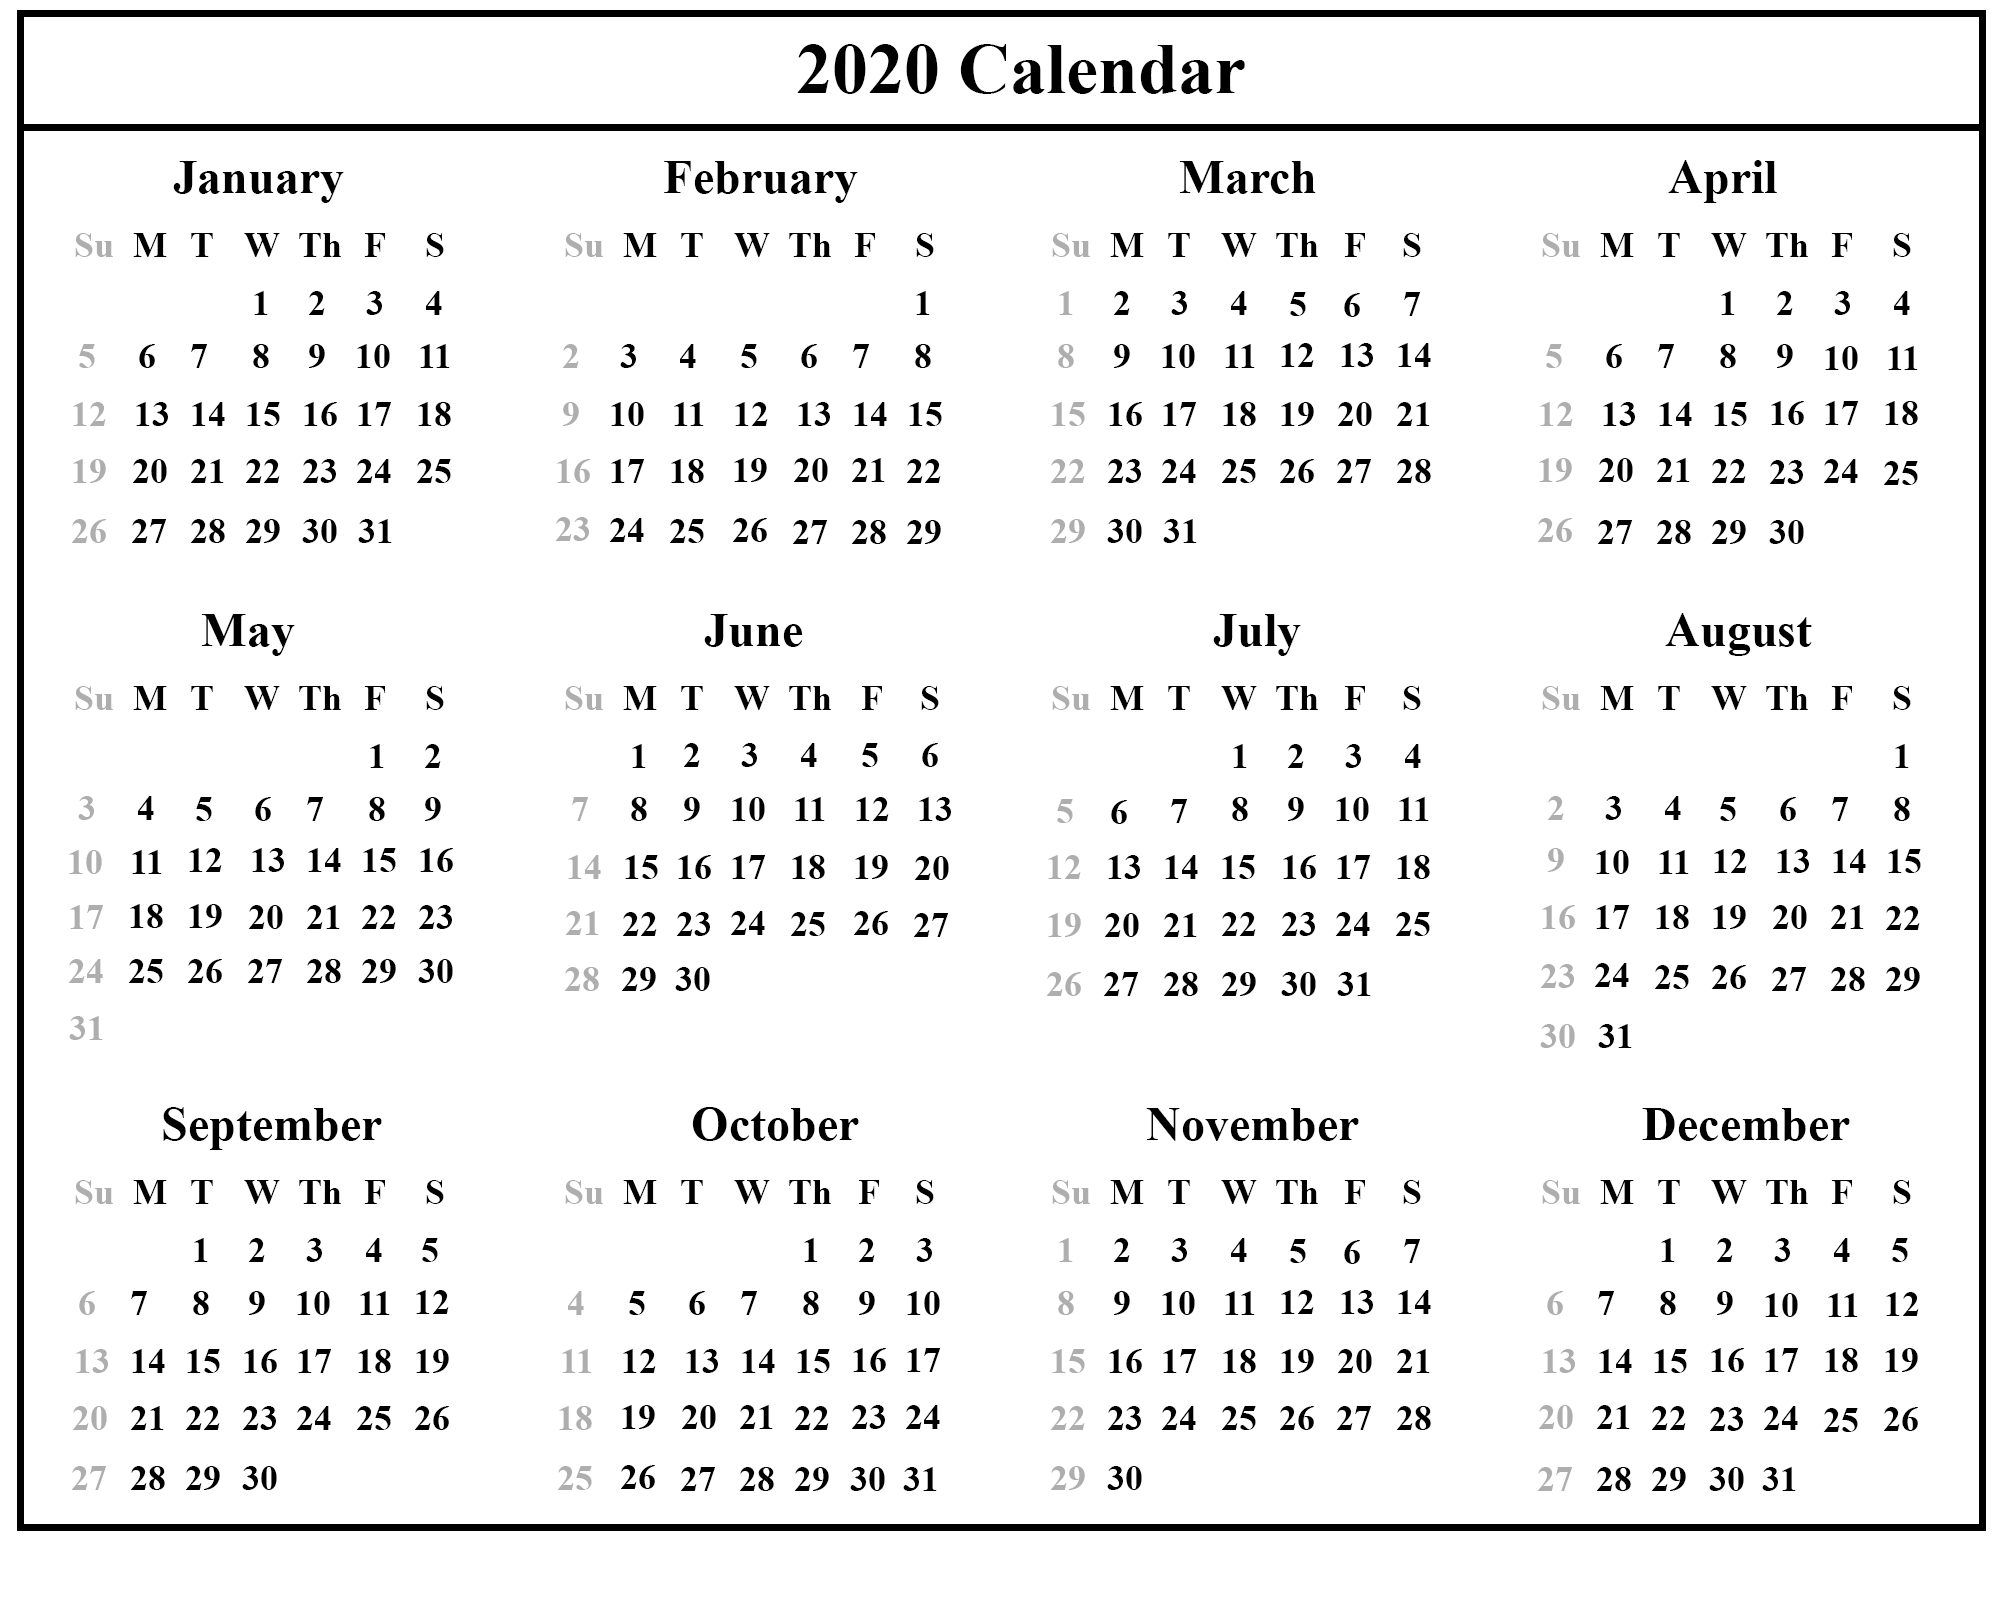 Free Printable 2020 Calendar – One Page Template | 12 Month